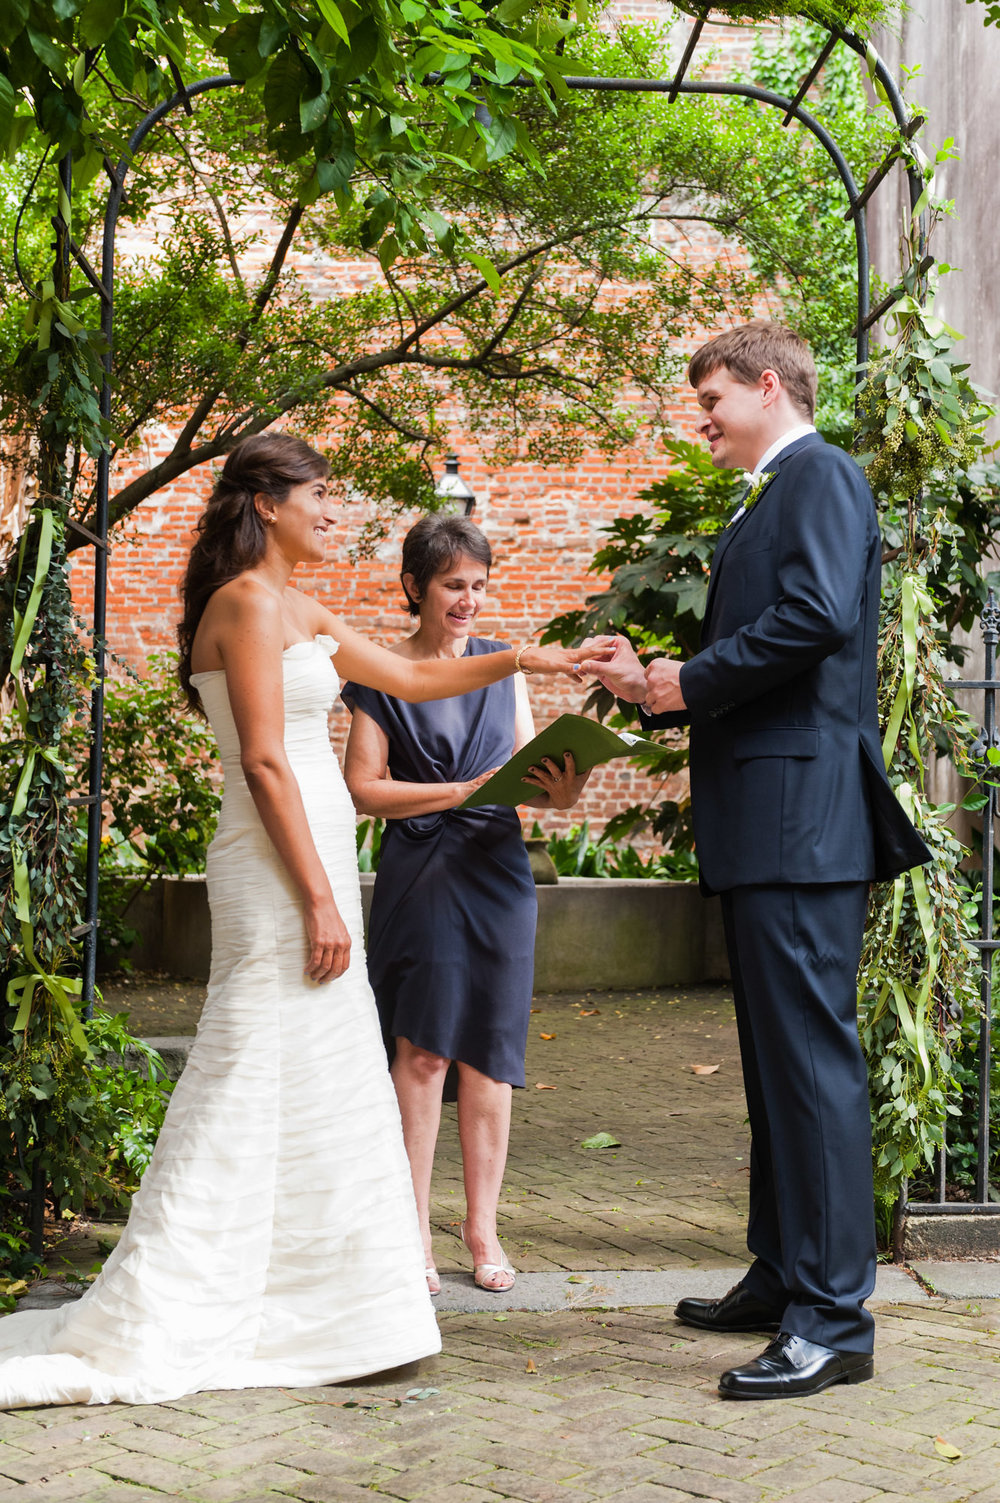 Exchanging rings at Wedding ceremony at the New Orleans Pharmacy Museum, photographed by Scott Myers